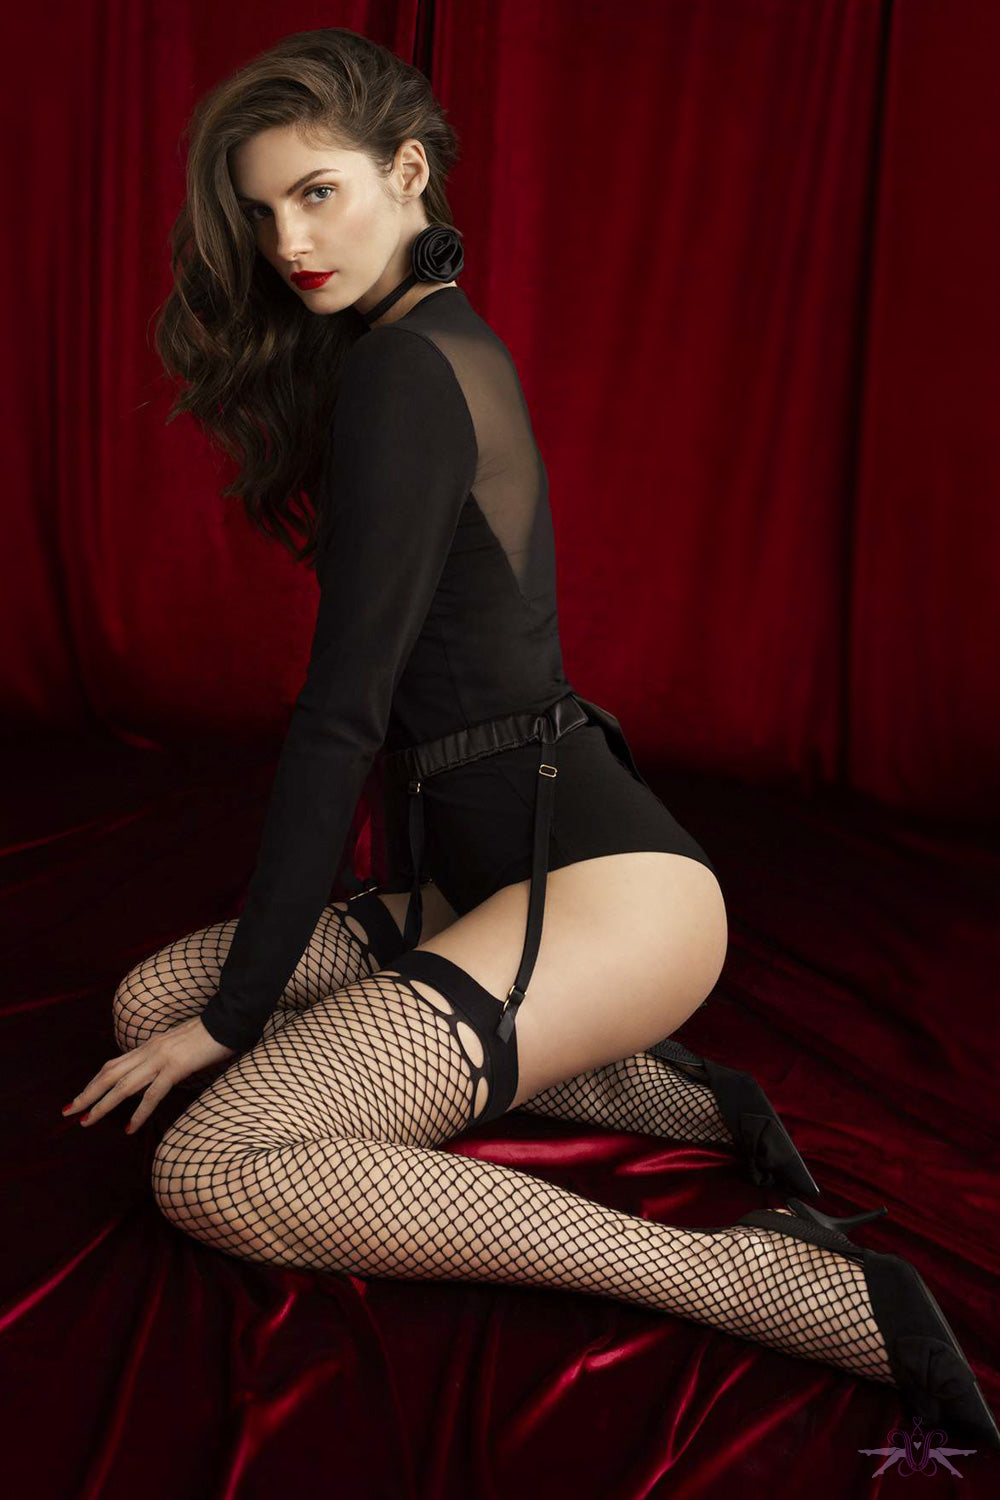 Fiore Sensual Burlesque Fishnet Stockings - Mayfair Stockings